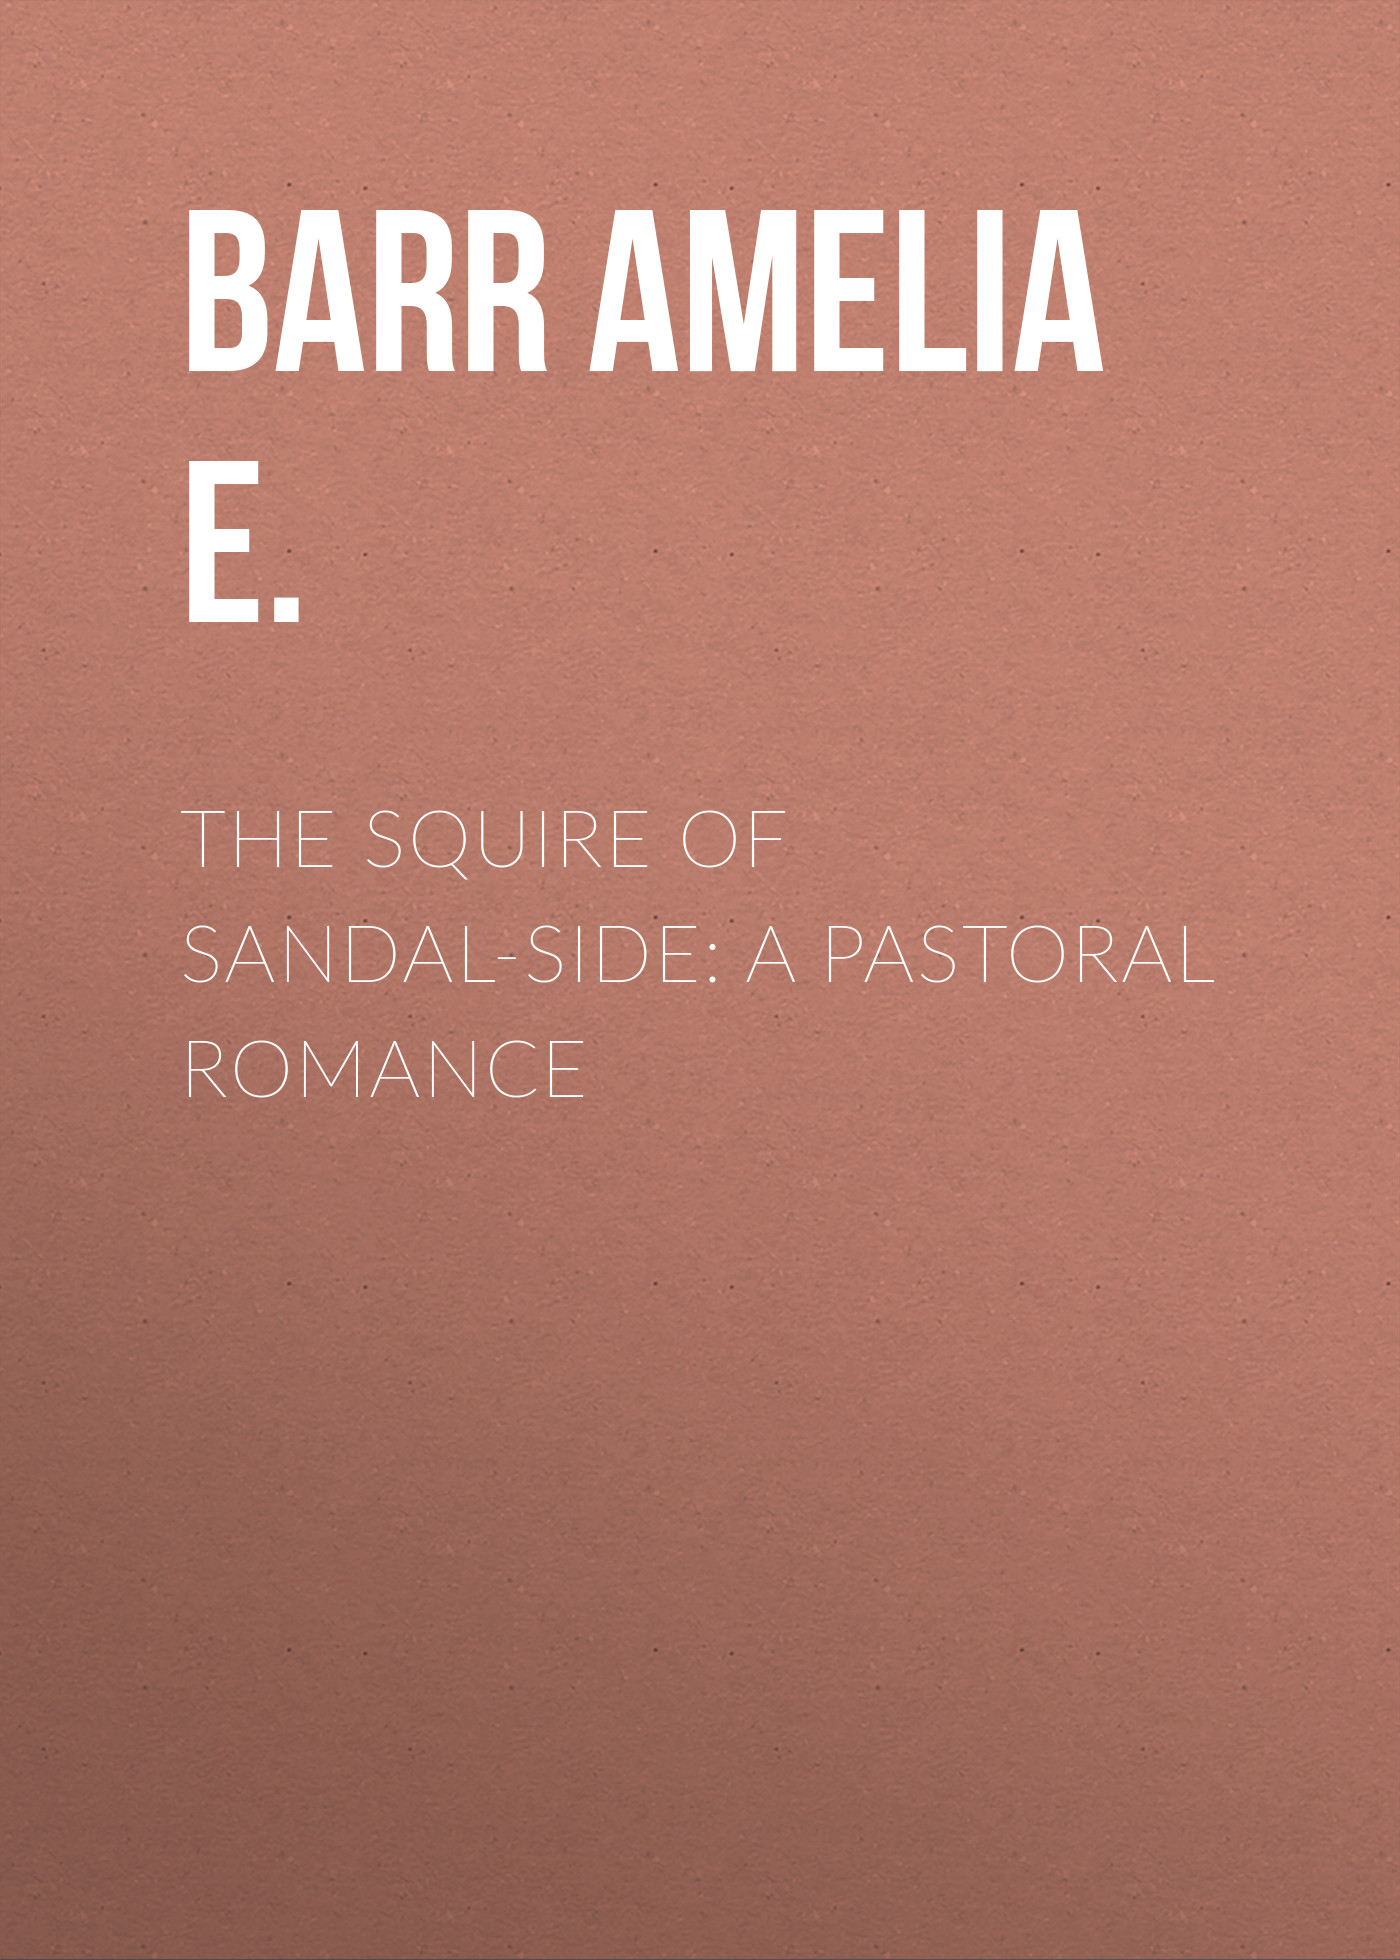 Barr Amelia E. The Squire of Sandal-Side: A Pastoral Romance